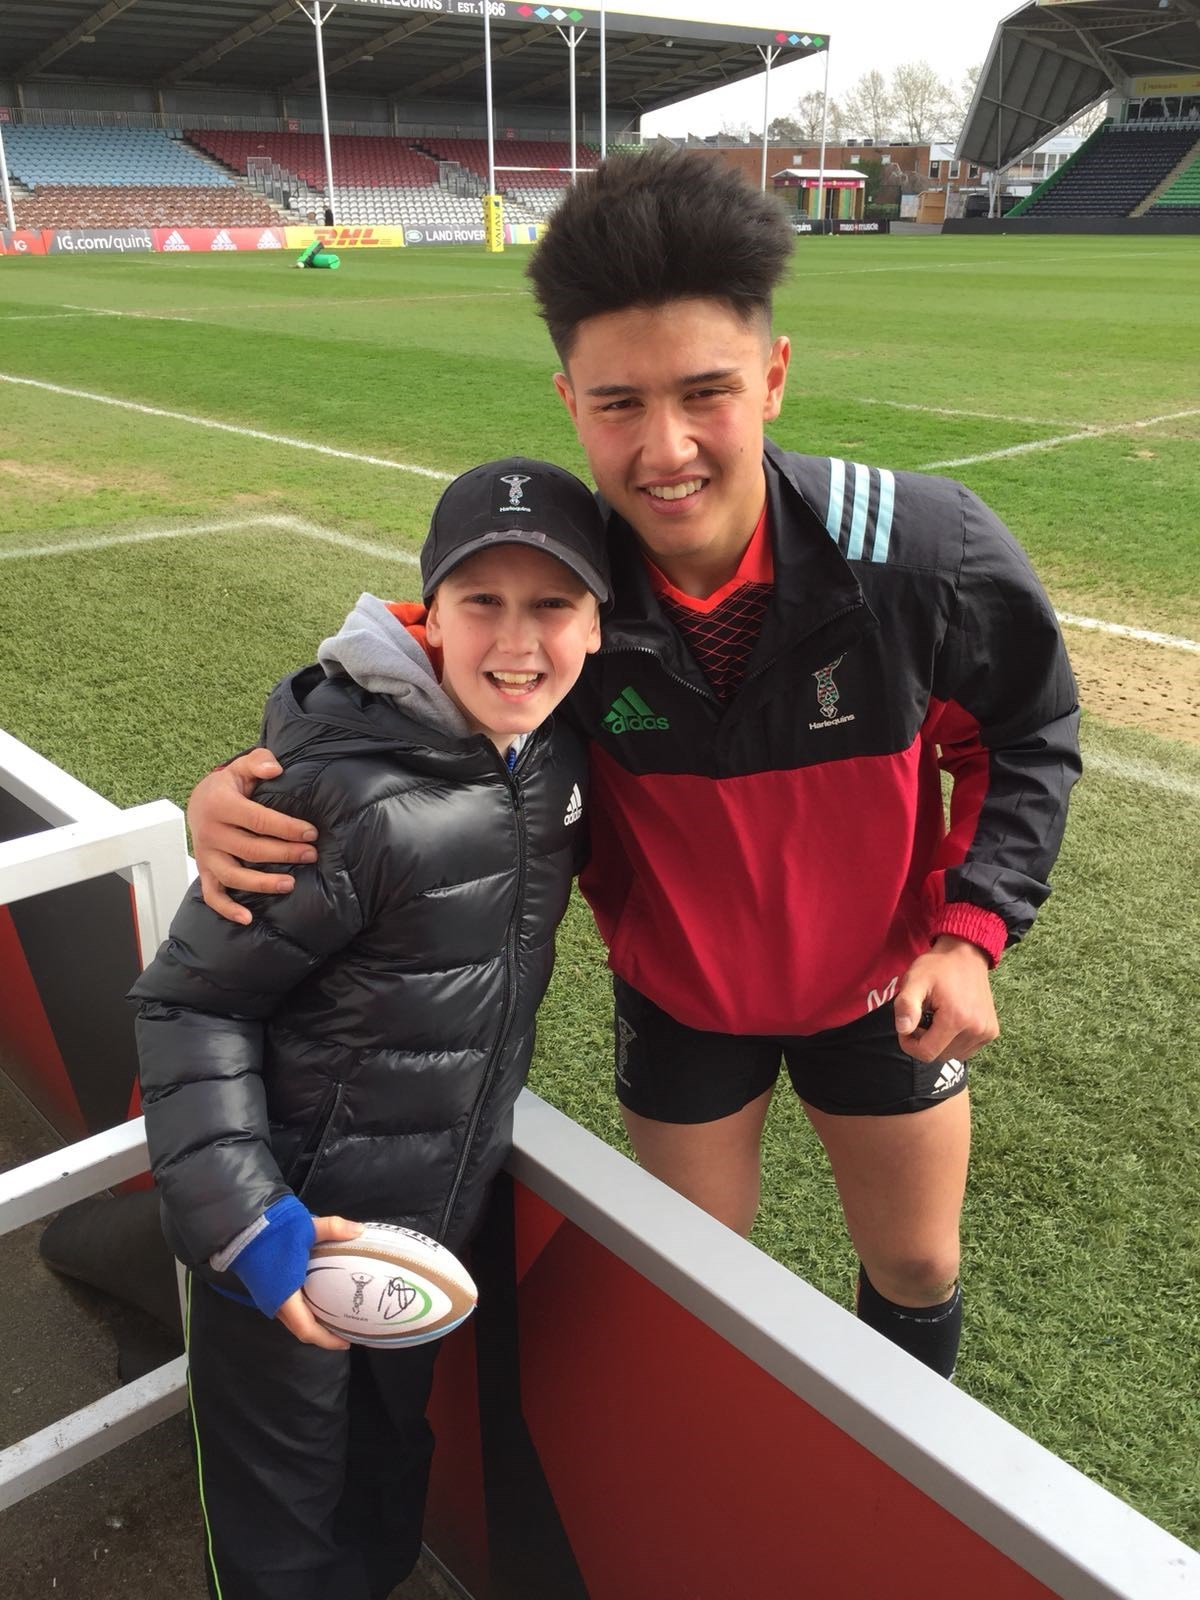 Meeting Marcus Smith at The Stoop